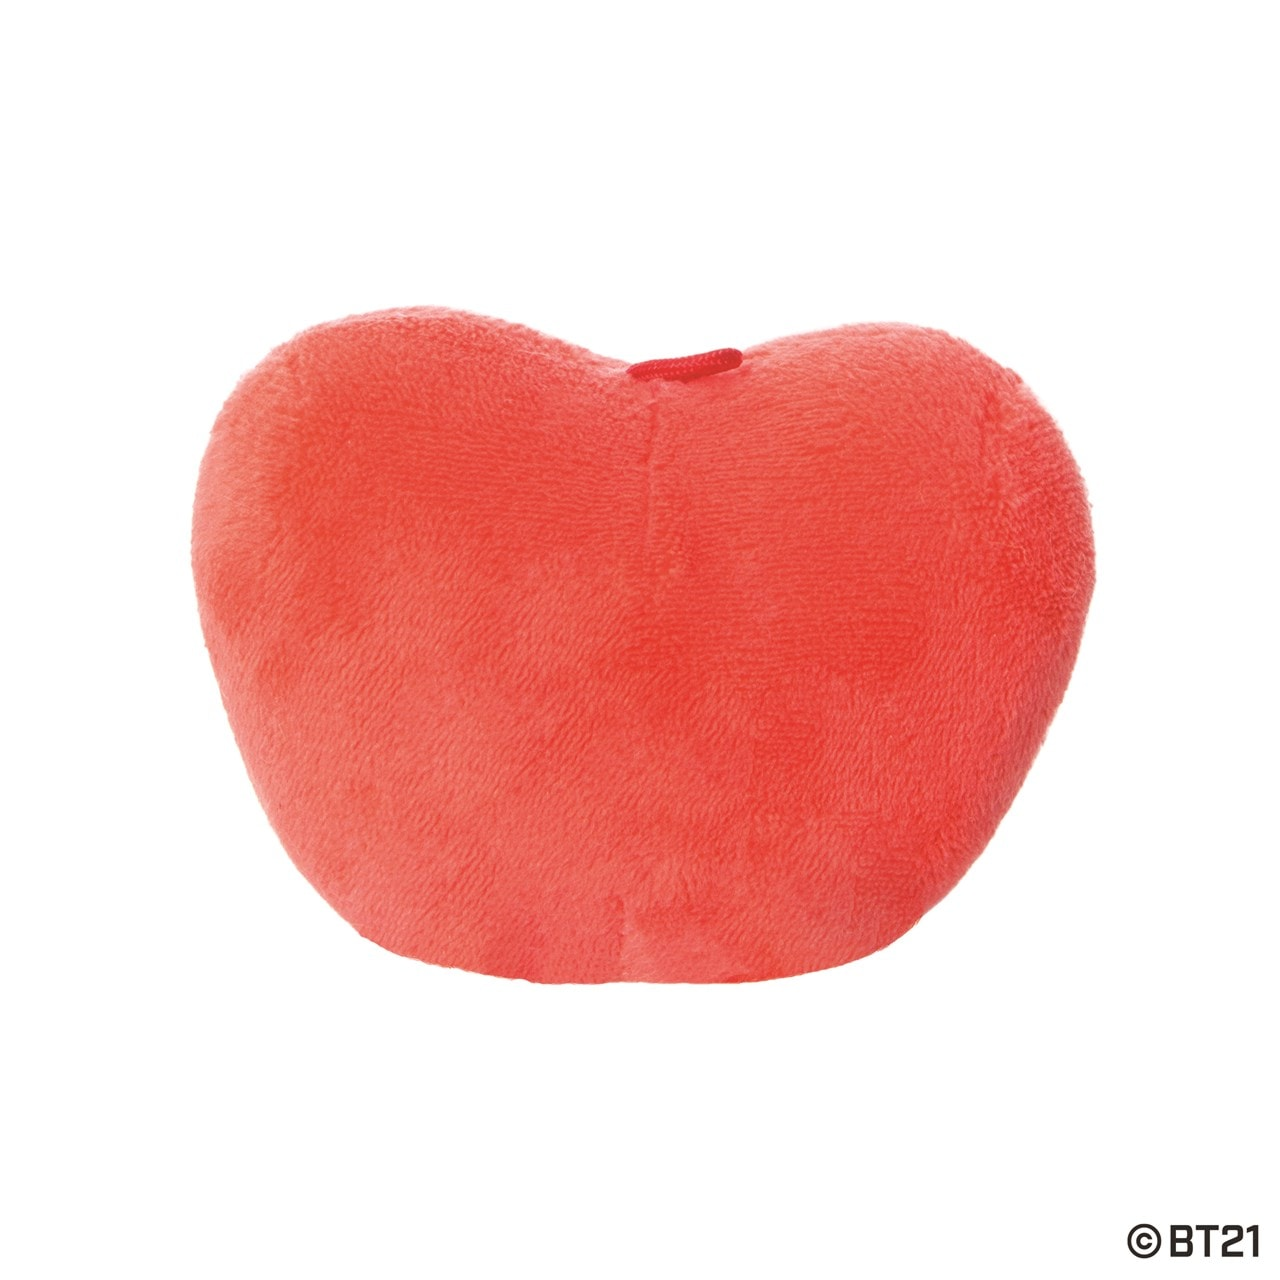 Tata Baby Pong Pong: BT21 Soft Toy - 2